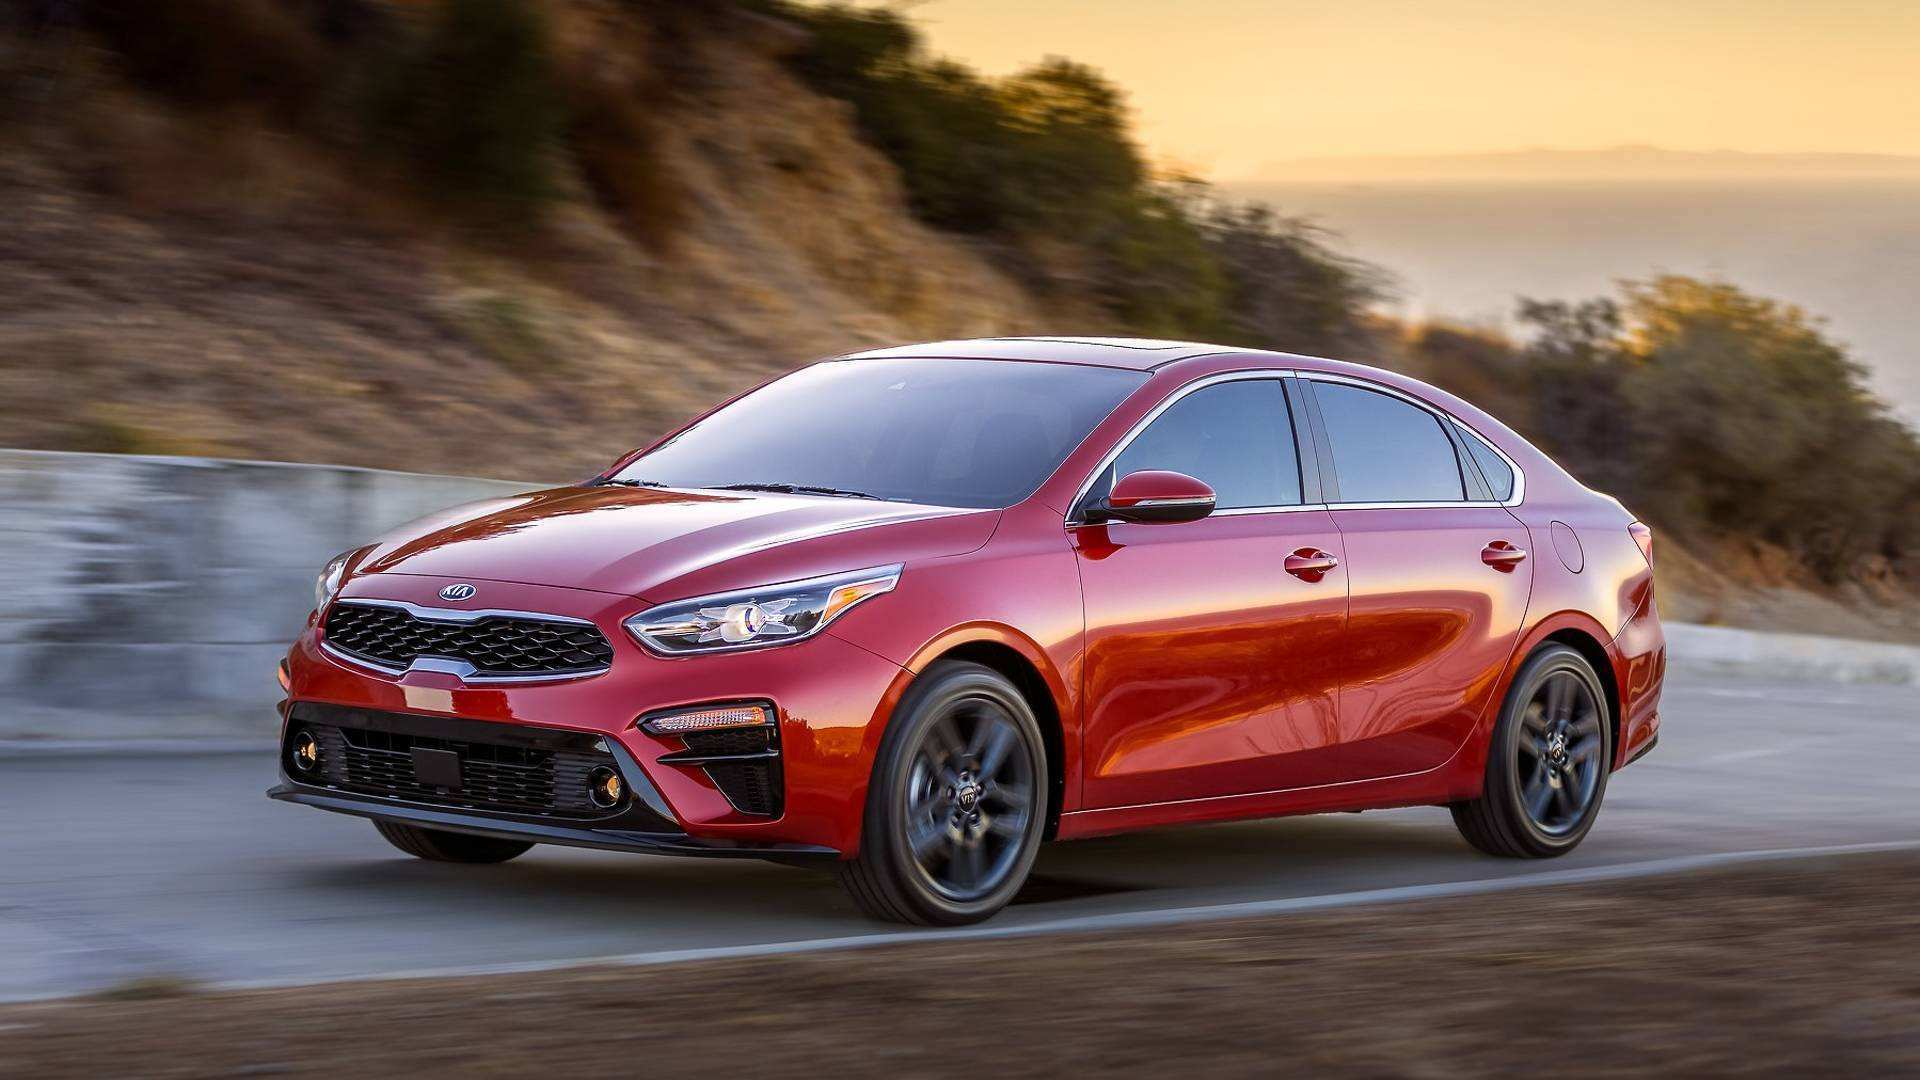 48 The 2019 Kia Forte5 Hatchback Spy Shoot